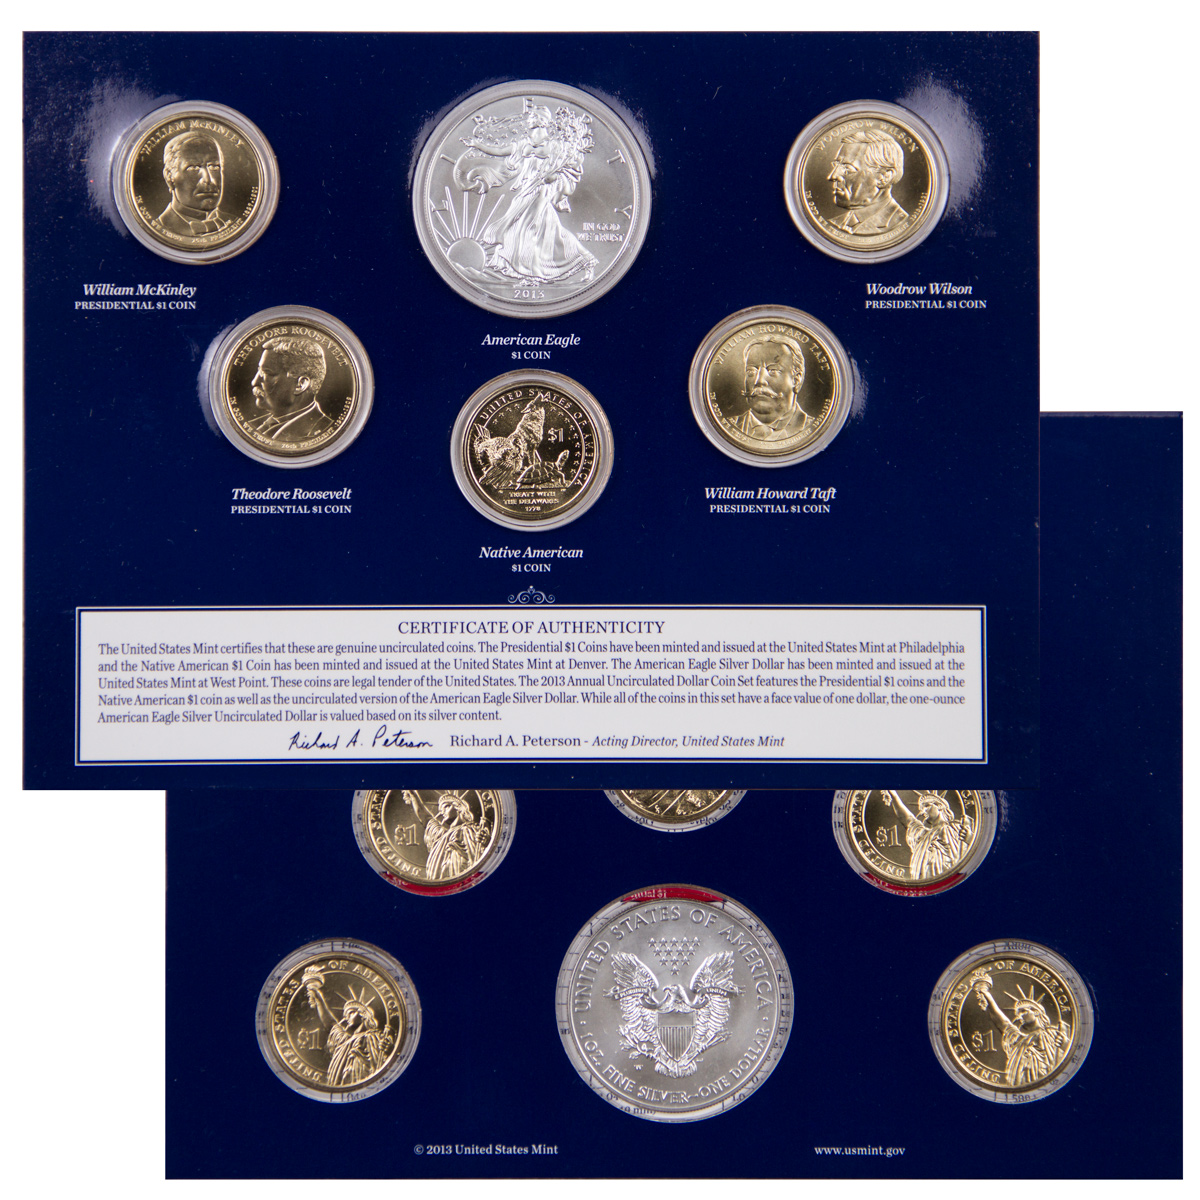 2013 United States Mint Uncirculated Dollar Coin Set - BU (Original Mint Packaging)